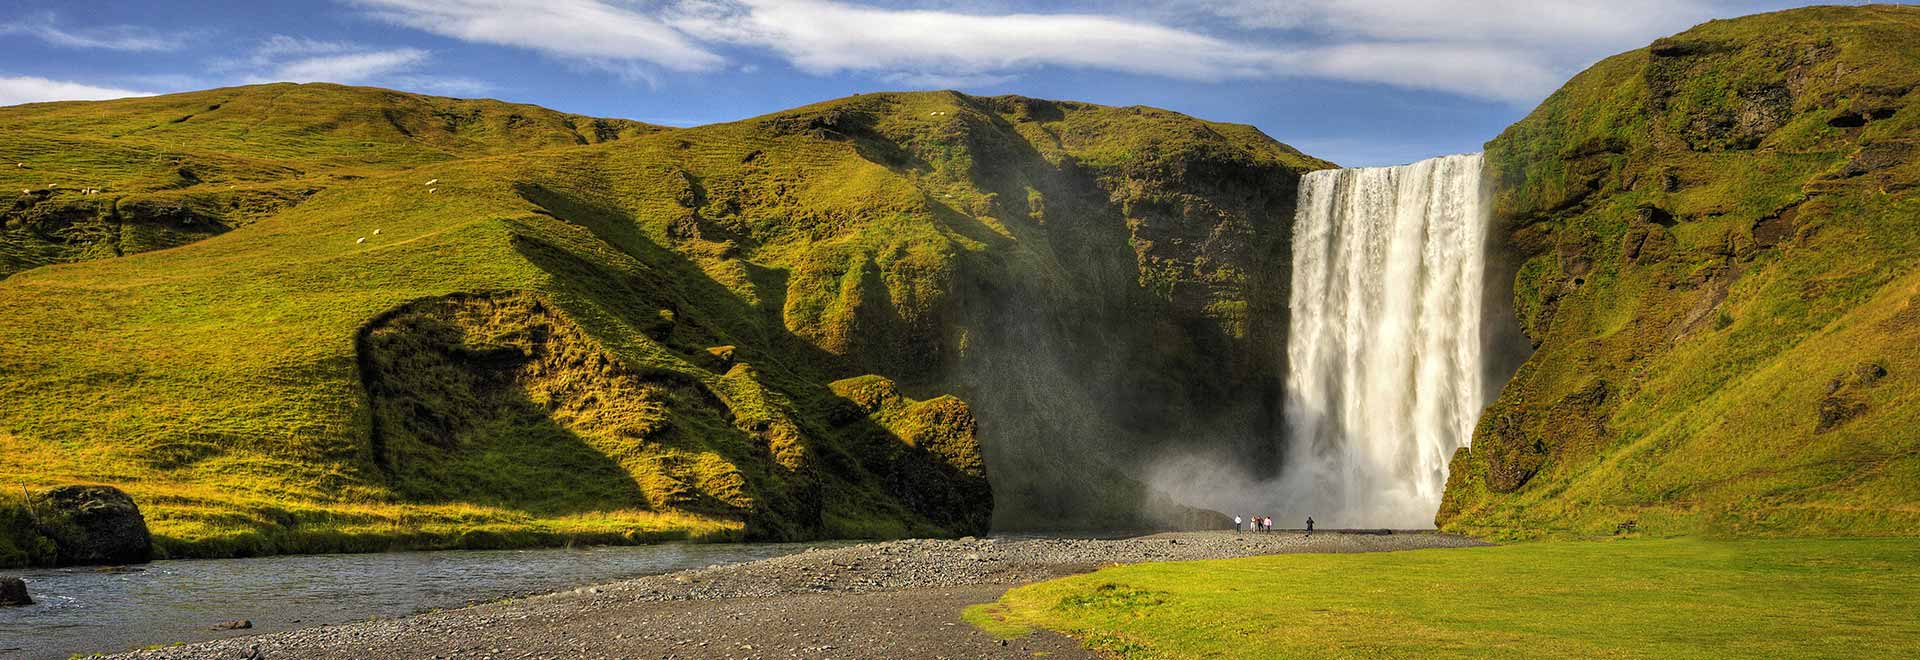 Europe Iceland Skogar Skogafoss Waterfall